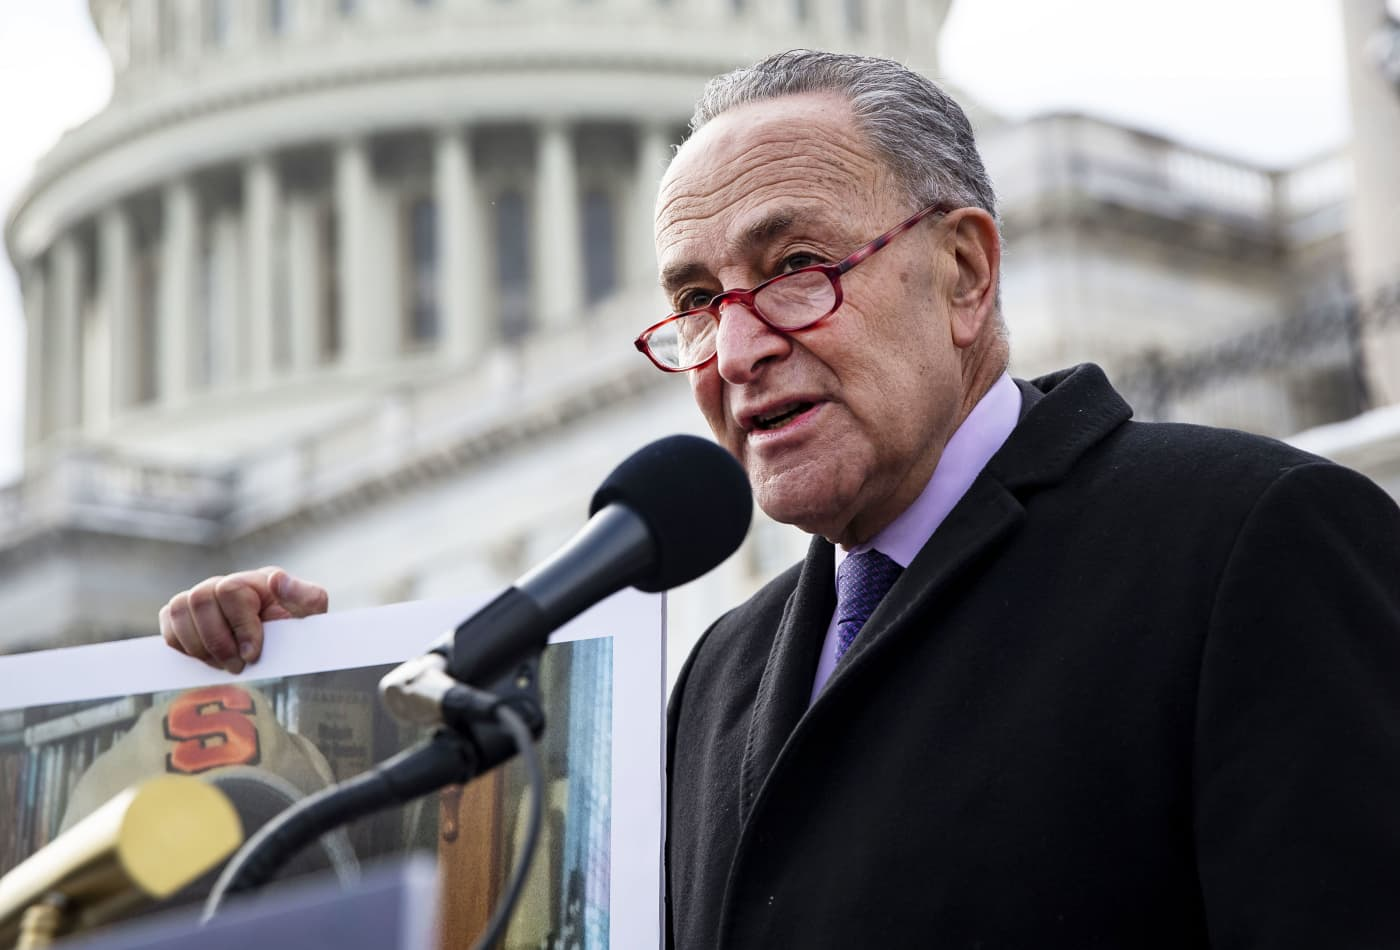 Chuck Schumer and Bernie Sanders call for restricting corporate share buybacks